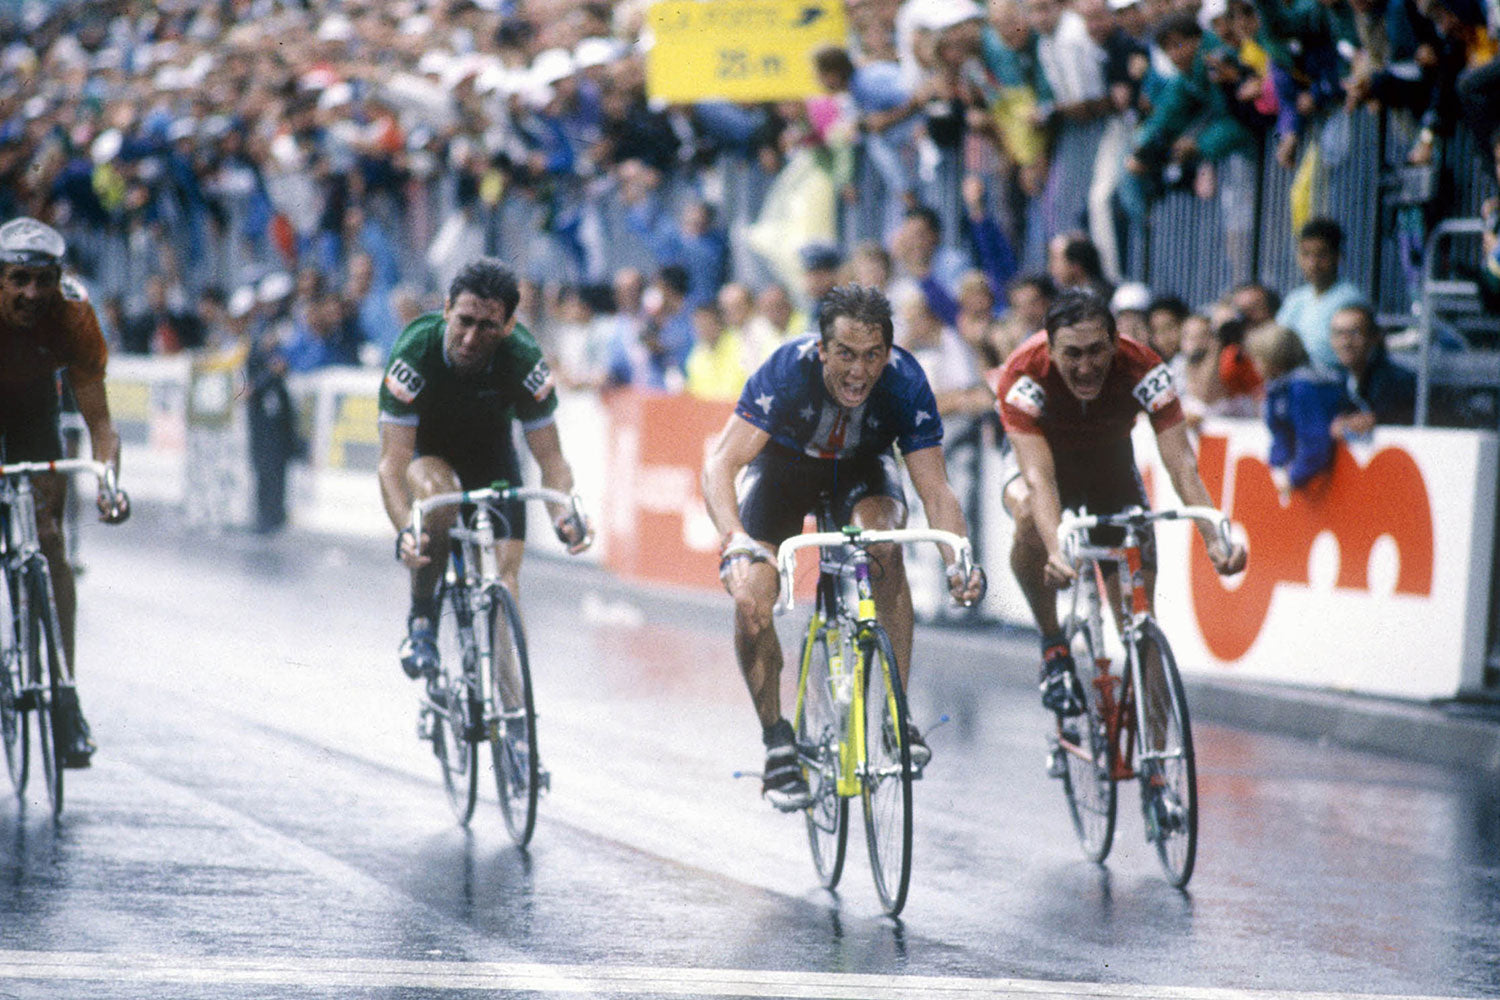 See the incredible delight captured by A. Landrain in Greg Lemond's face having sprinted to victory at the 1989 UCI Road World Championships in Chambéry, France. Photo Credit: Press Sports / L'Equipe.